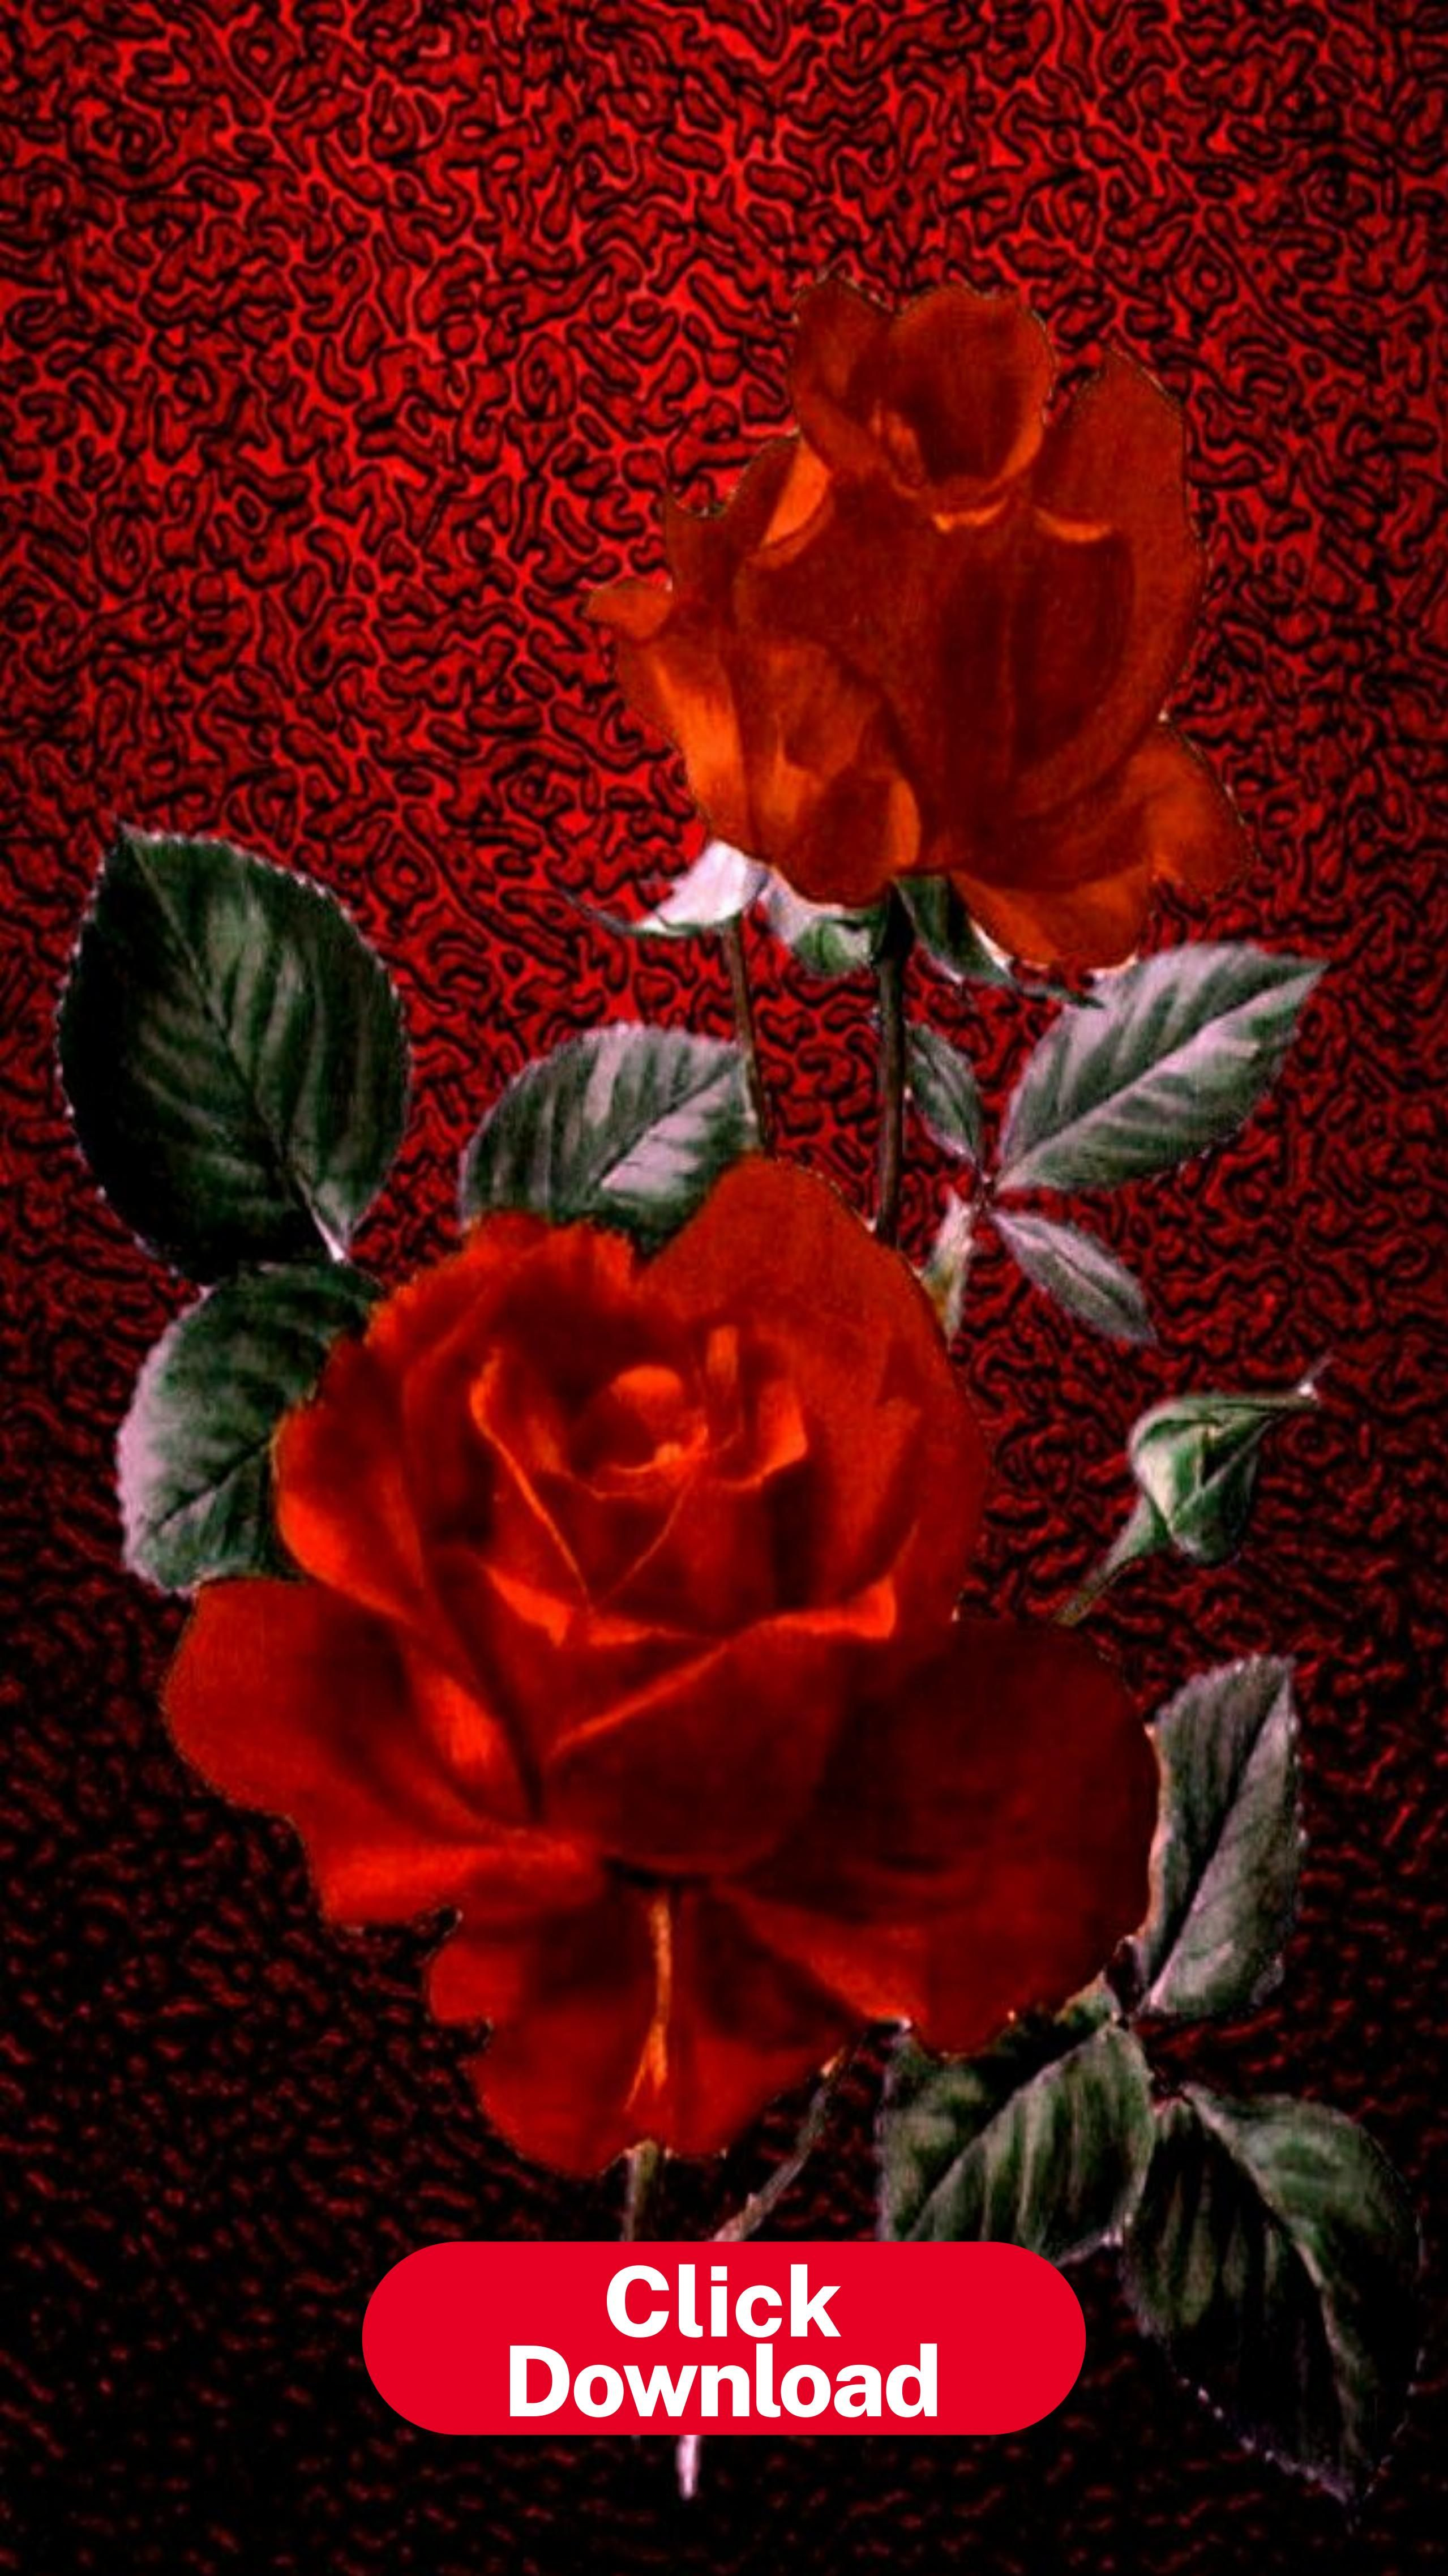 Iphone Vertical Wallpaper Red Roses Vintage Print On Fed Sparkle Wallpaper Iphone Roses Flower Phone Wallpaper Beautiful Flowers Wallpapers